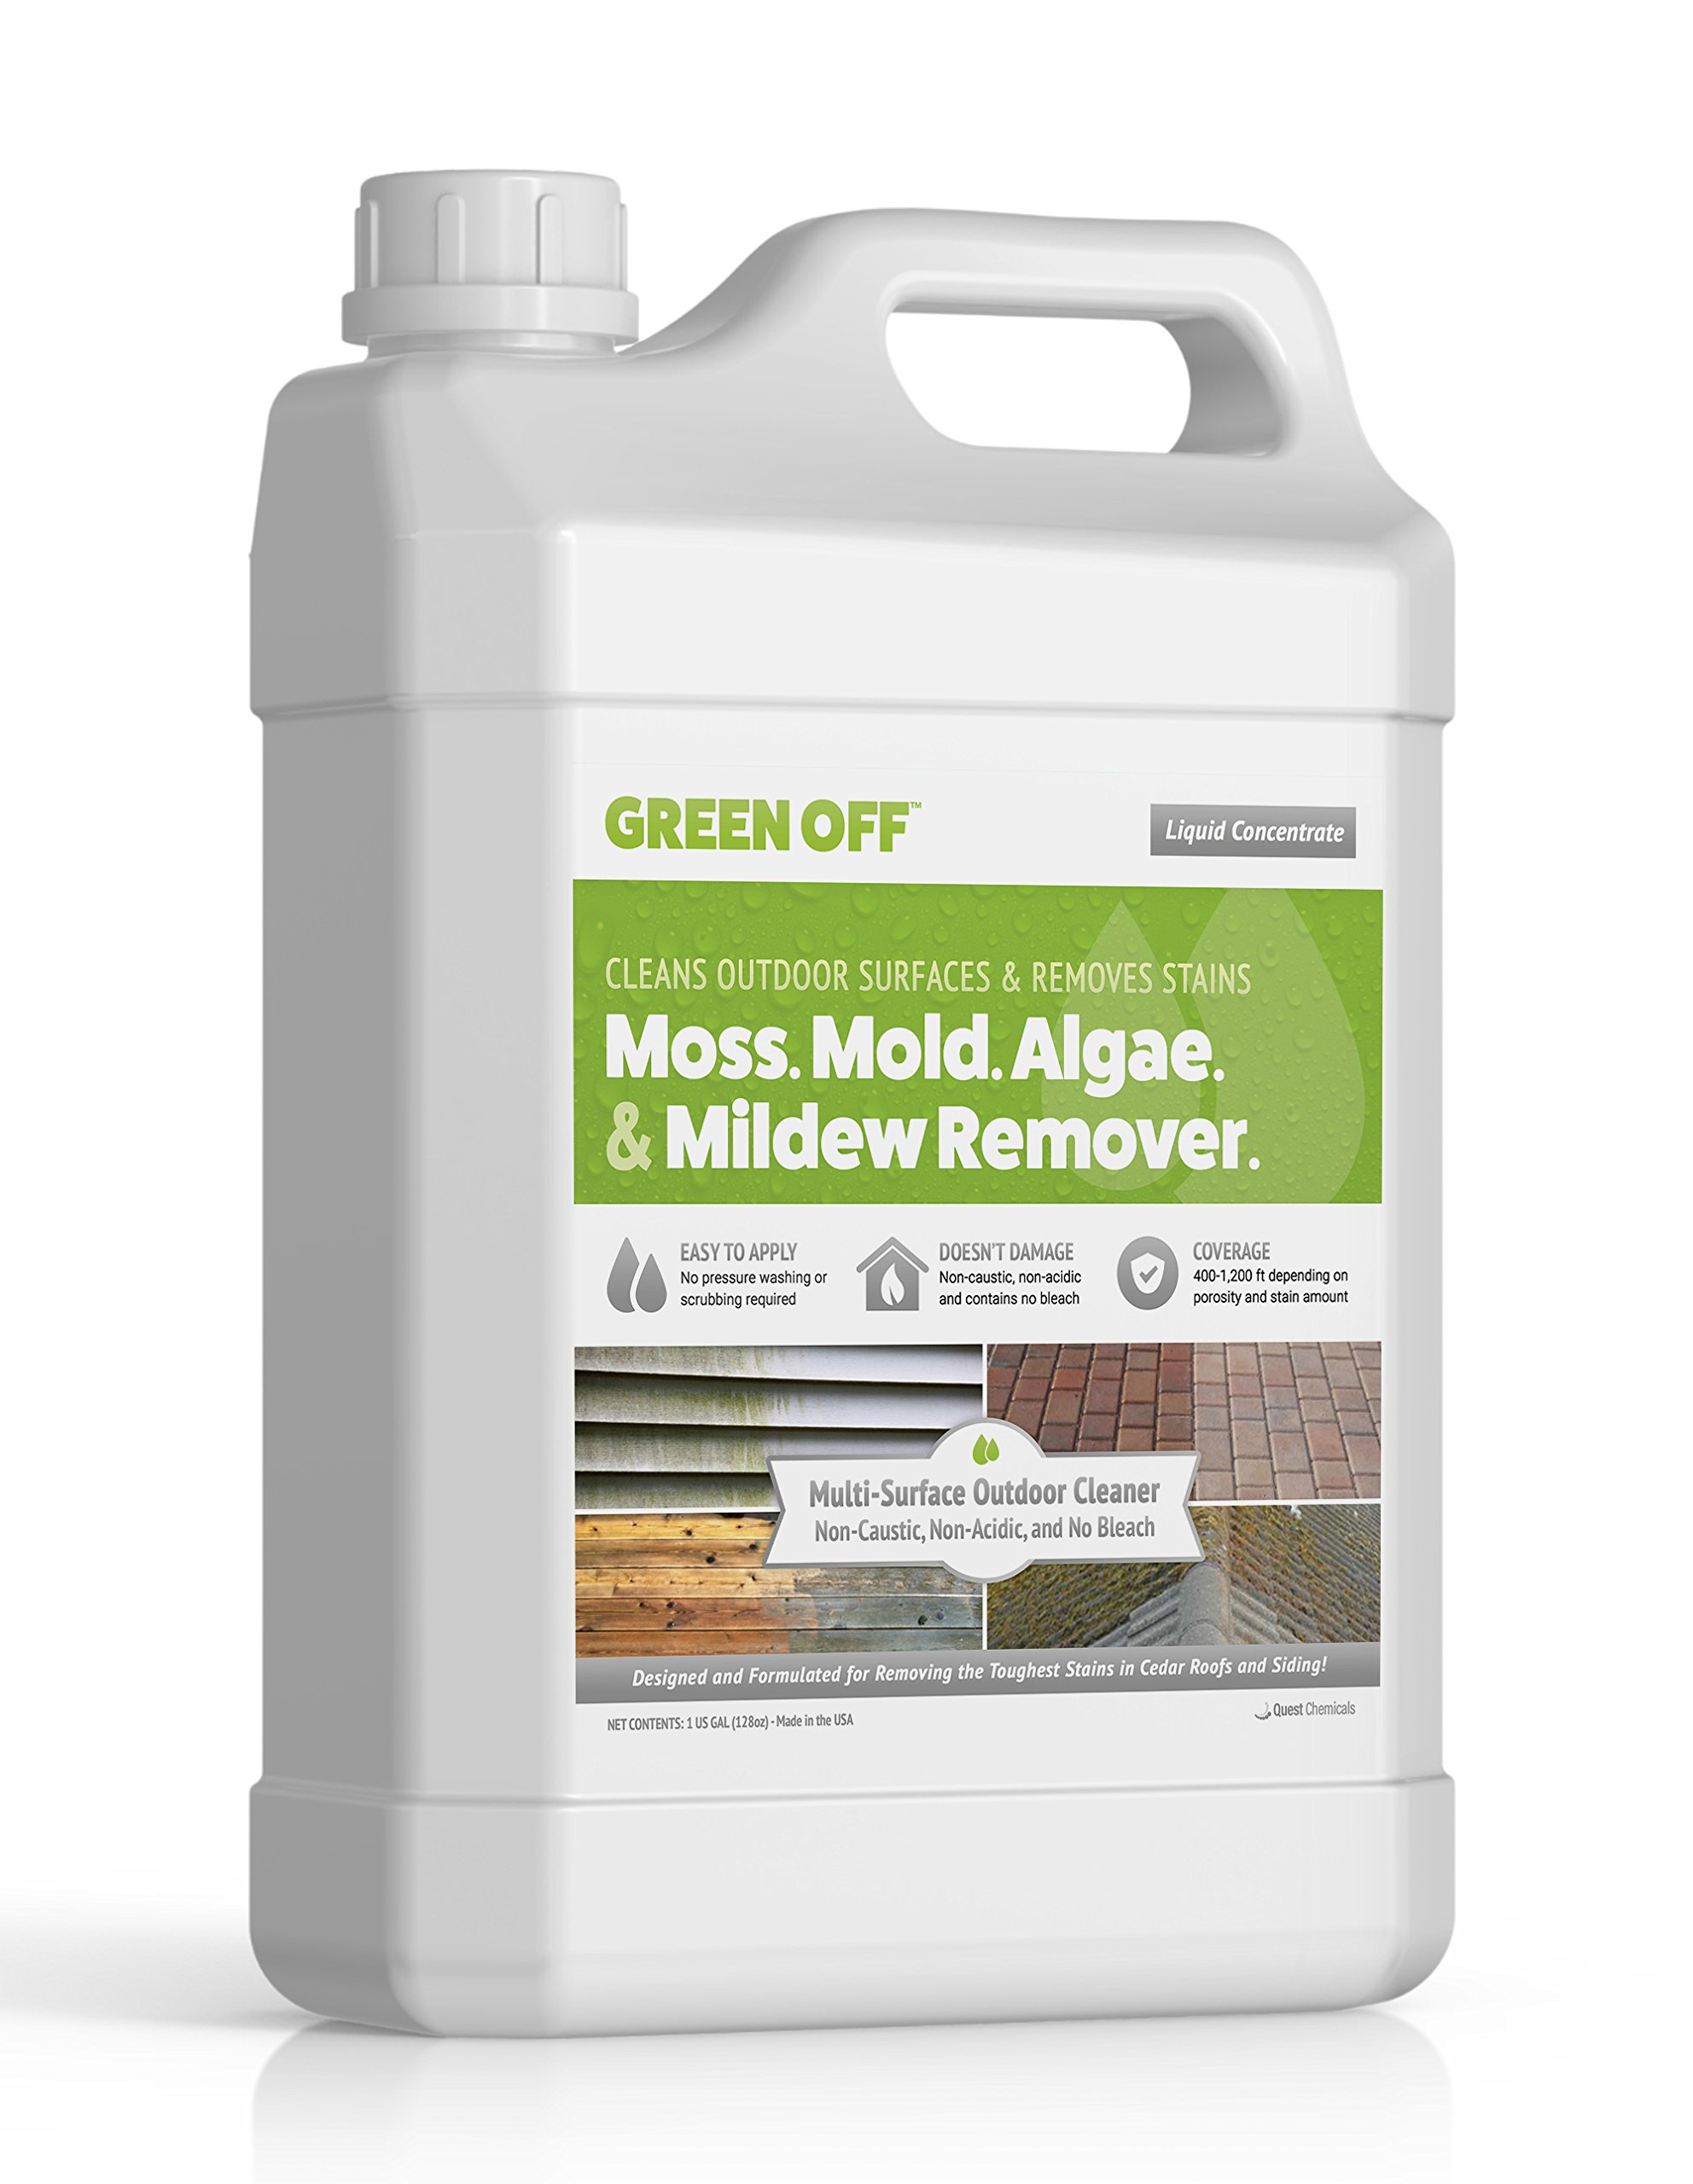 Green Off   Moss, Mold, Mildew, Algae Remover   Perfect for Wood Decks - Siding - Roofs - Concrete - and More   Premium Outdoor Cleaner from Quest Chemicals